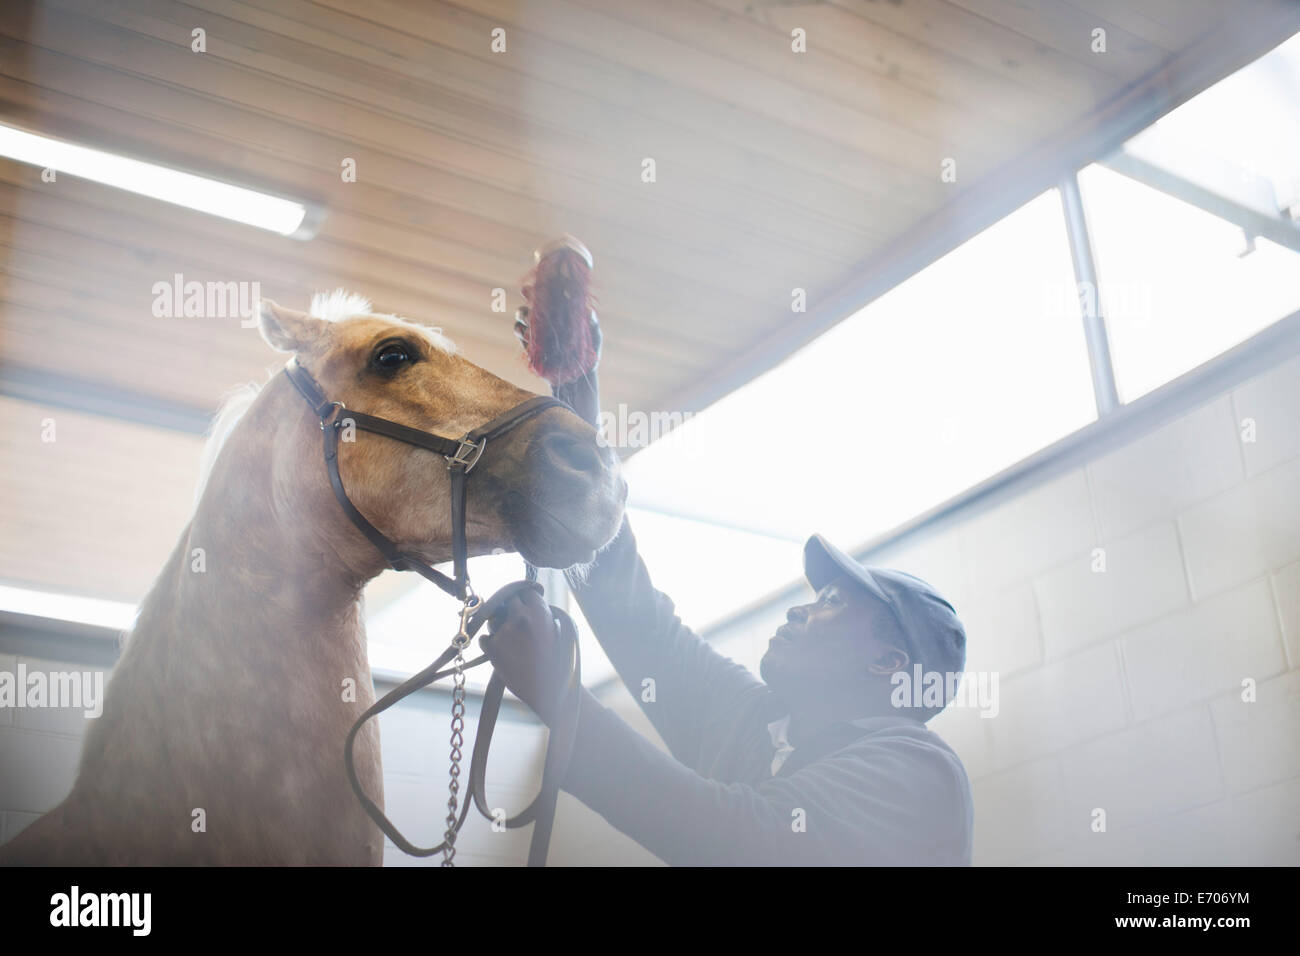 Low angle view of male stablehand cheval nerveux de toilettage Photo Stock